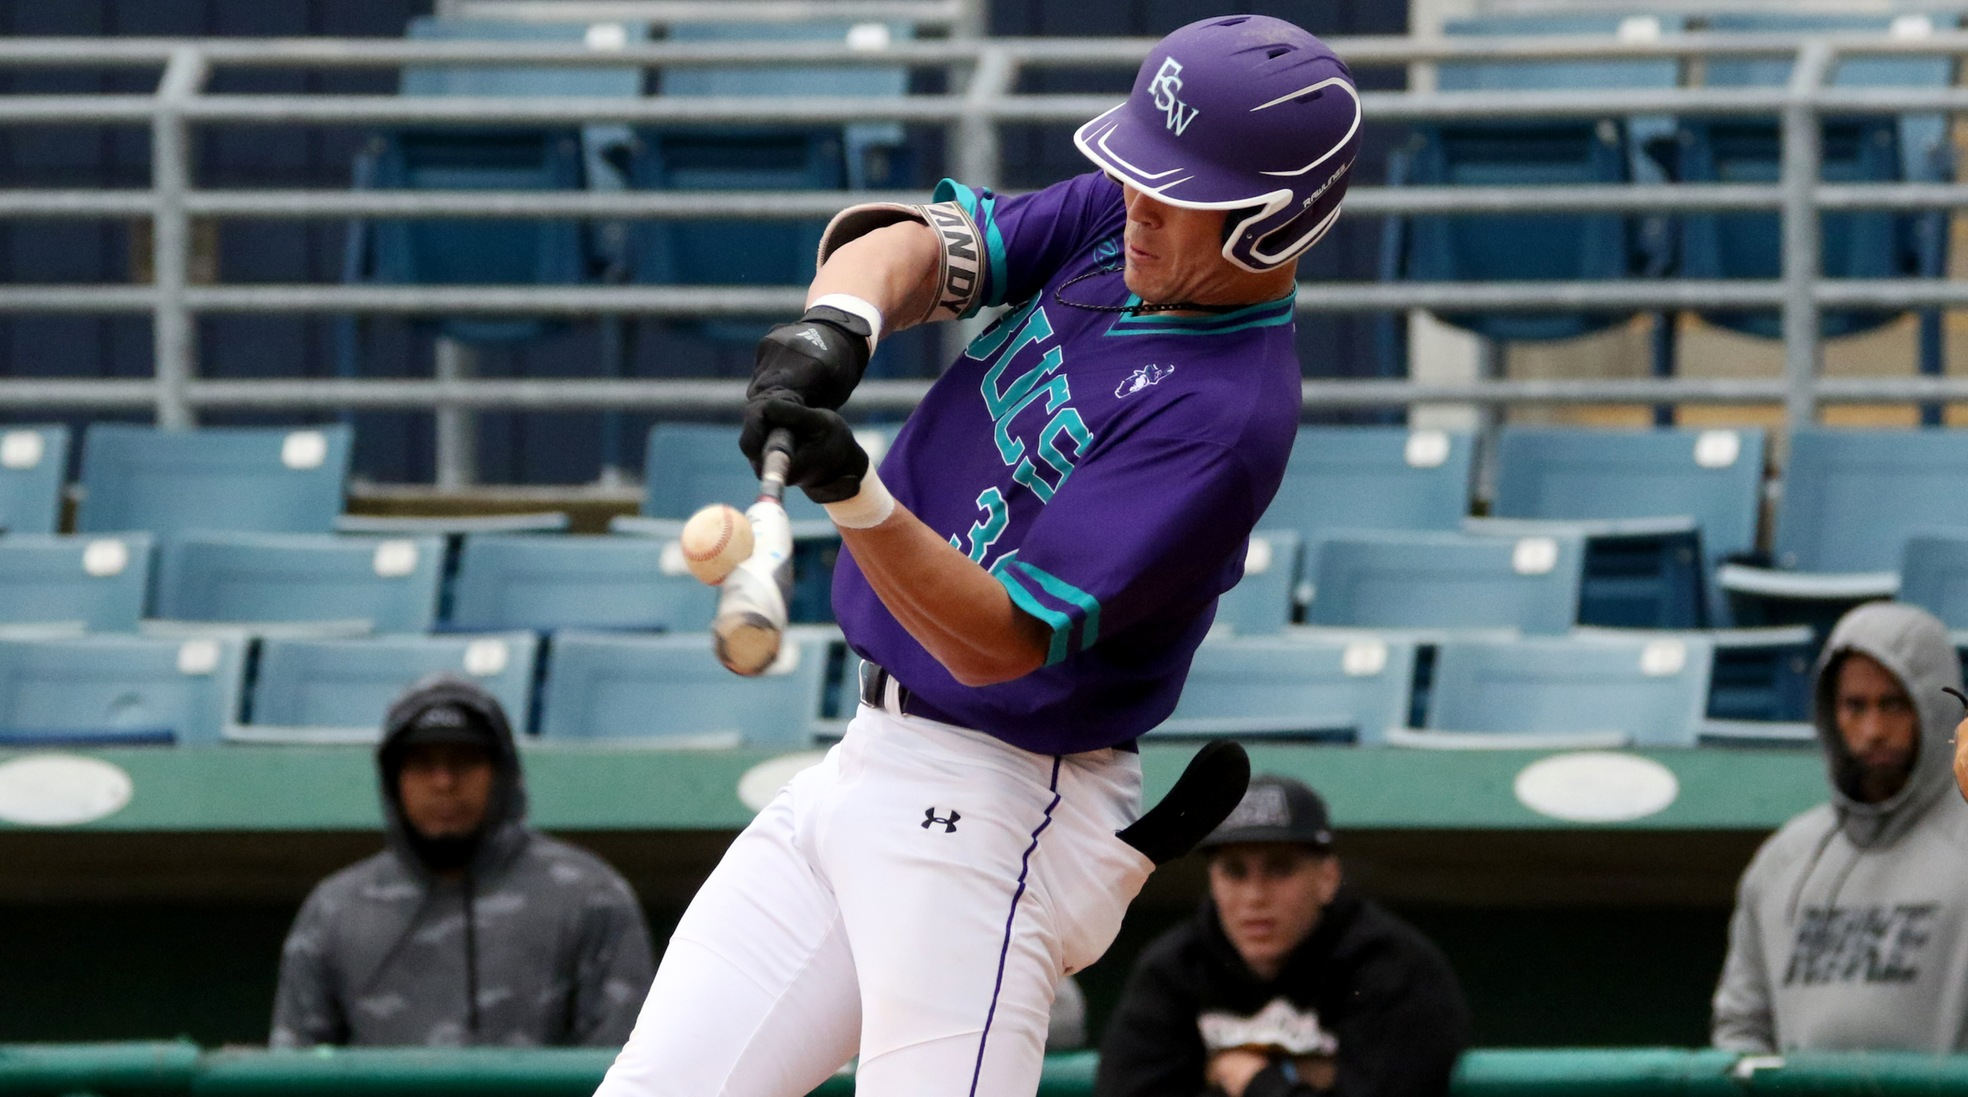 FSW Takes Doubleheader to Finish Off Sweep